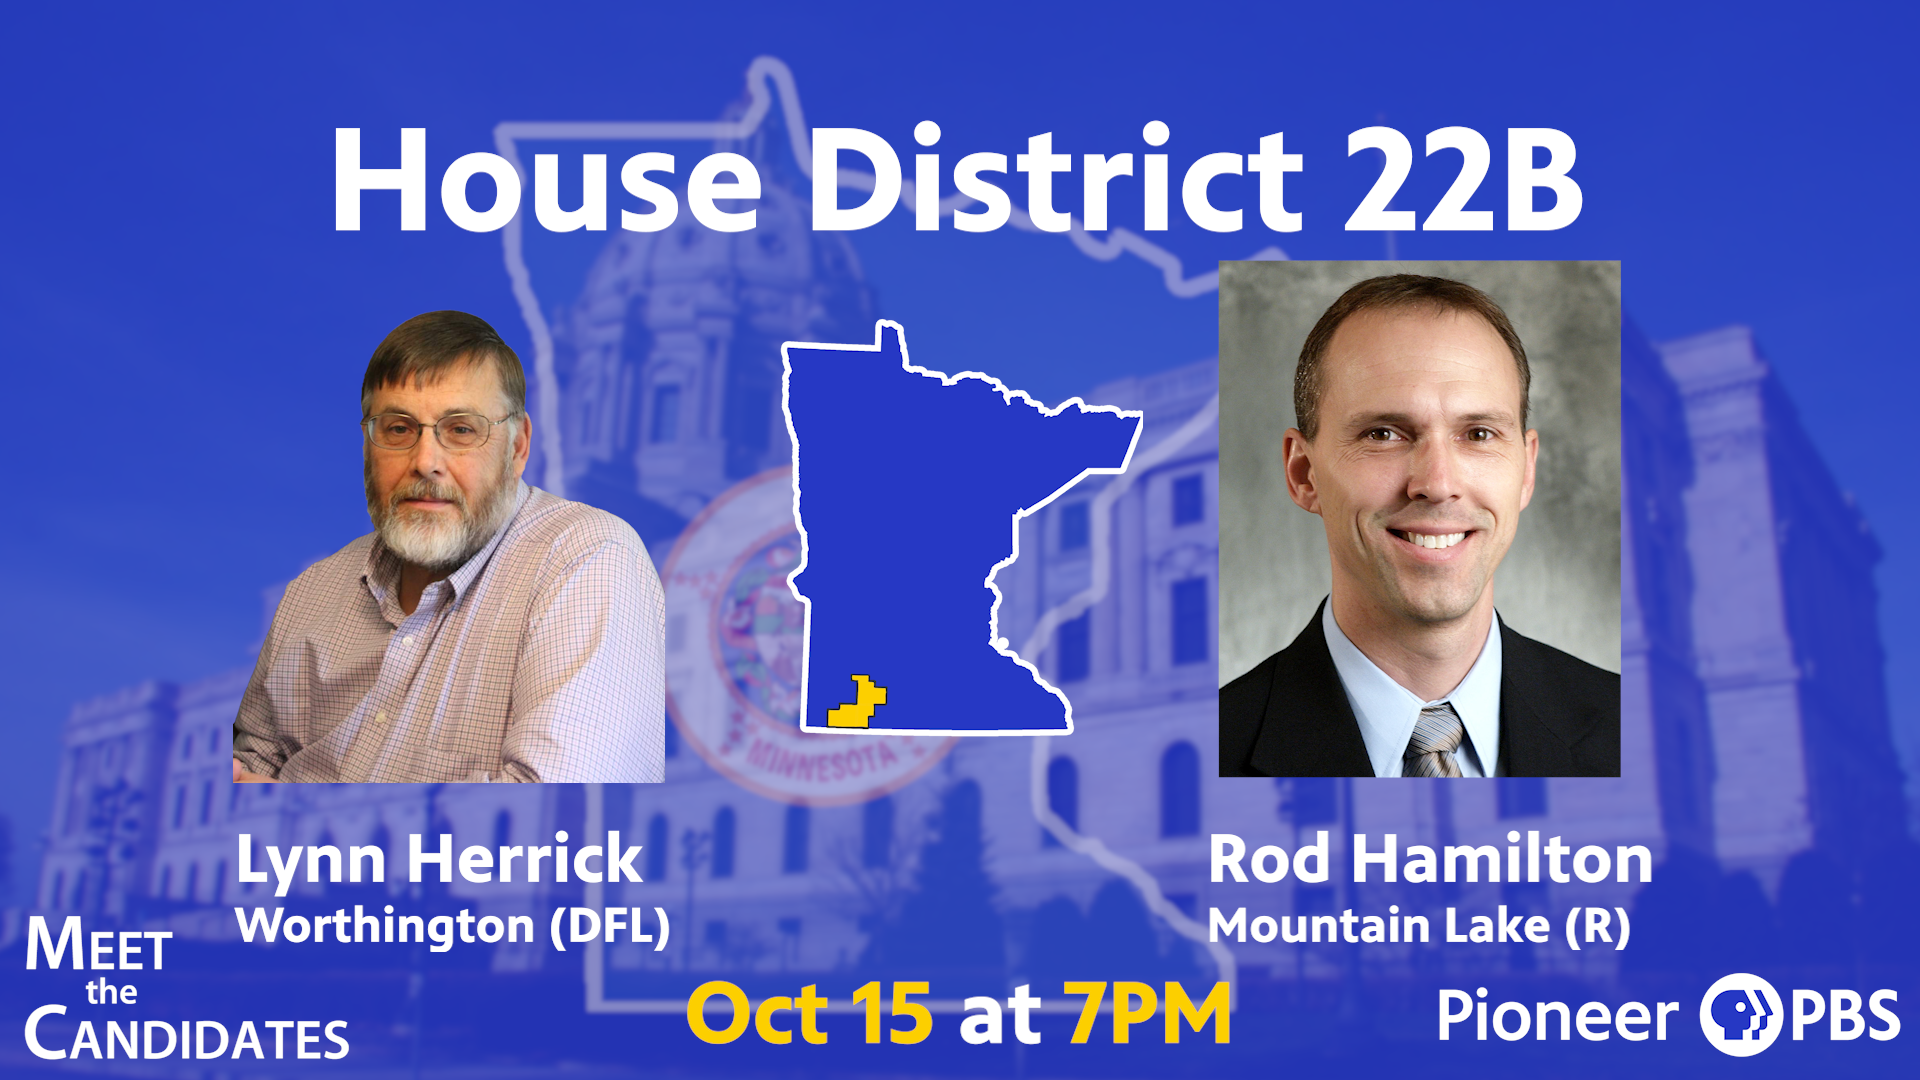 House District 22B incumbent Rod Hamilton (R) of Mountain Lake and challenger Lynn Herrick (DFL) of Worthington.